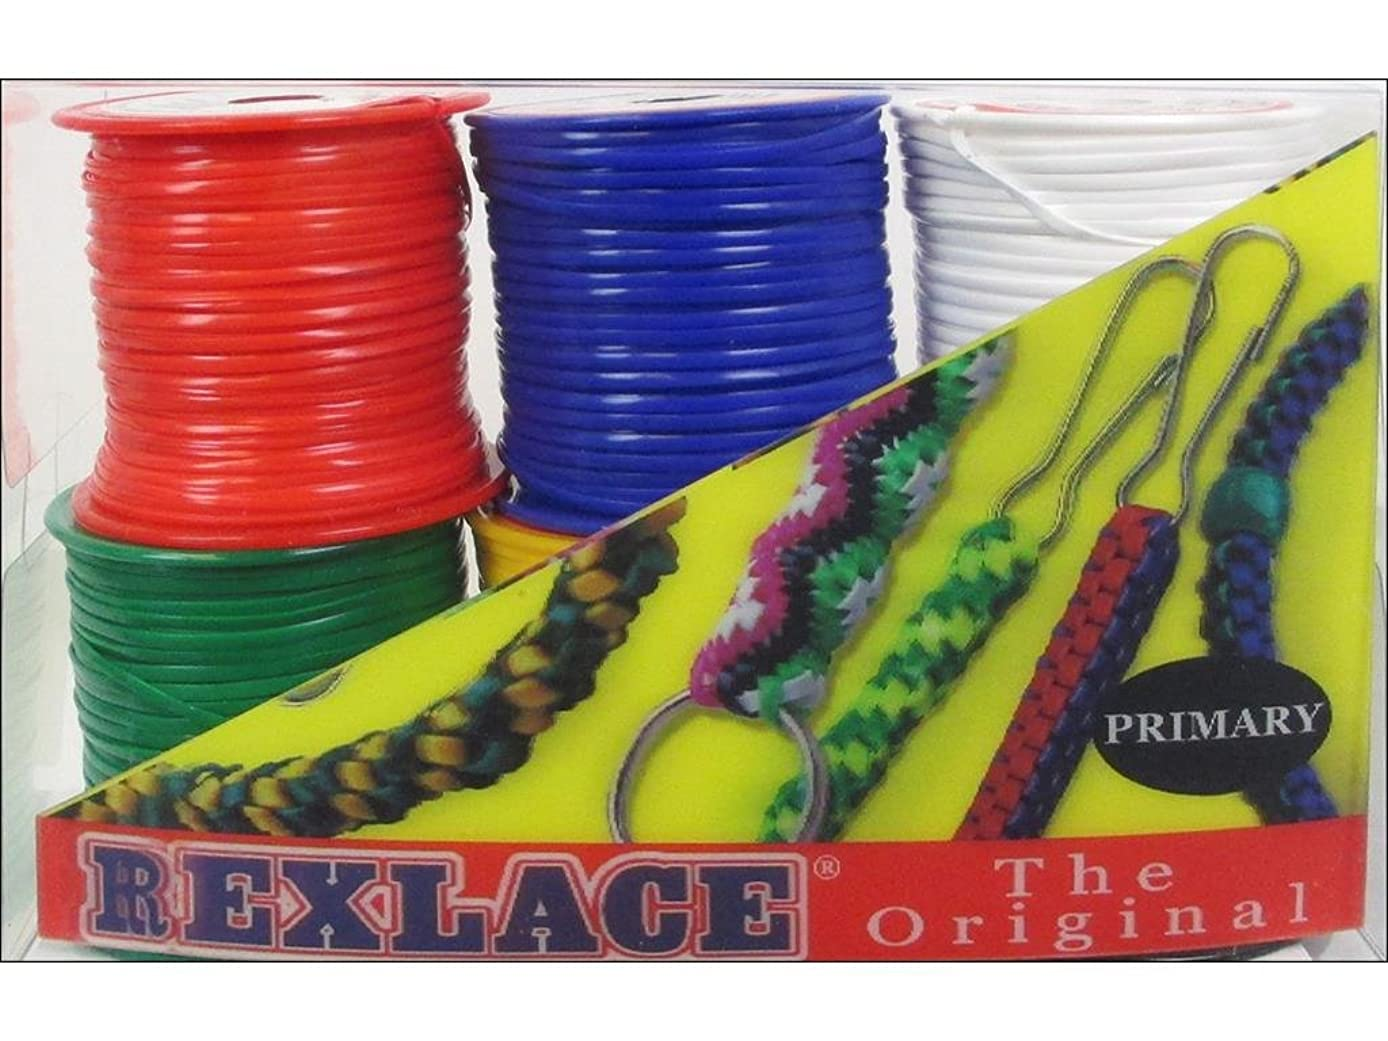 Pepperell Braiding Co. Pepperell Pk Rexlace 6 Pack Primary Colors